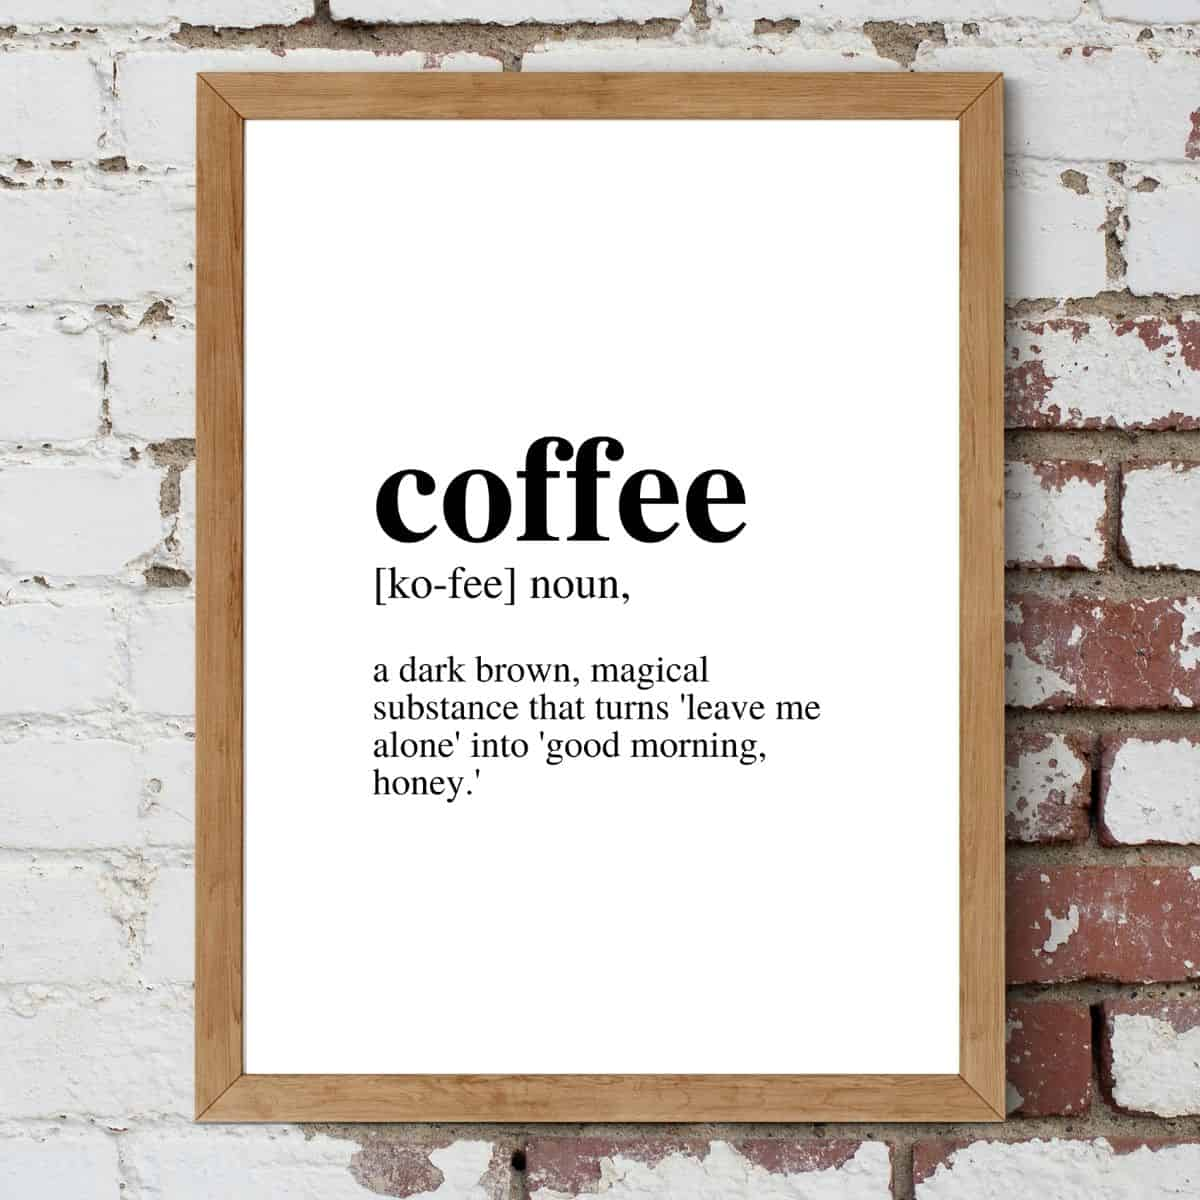 Brown frame on the brick wall with the text: Coffee, noun definition